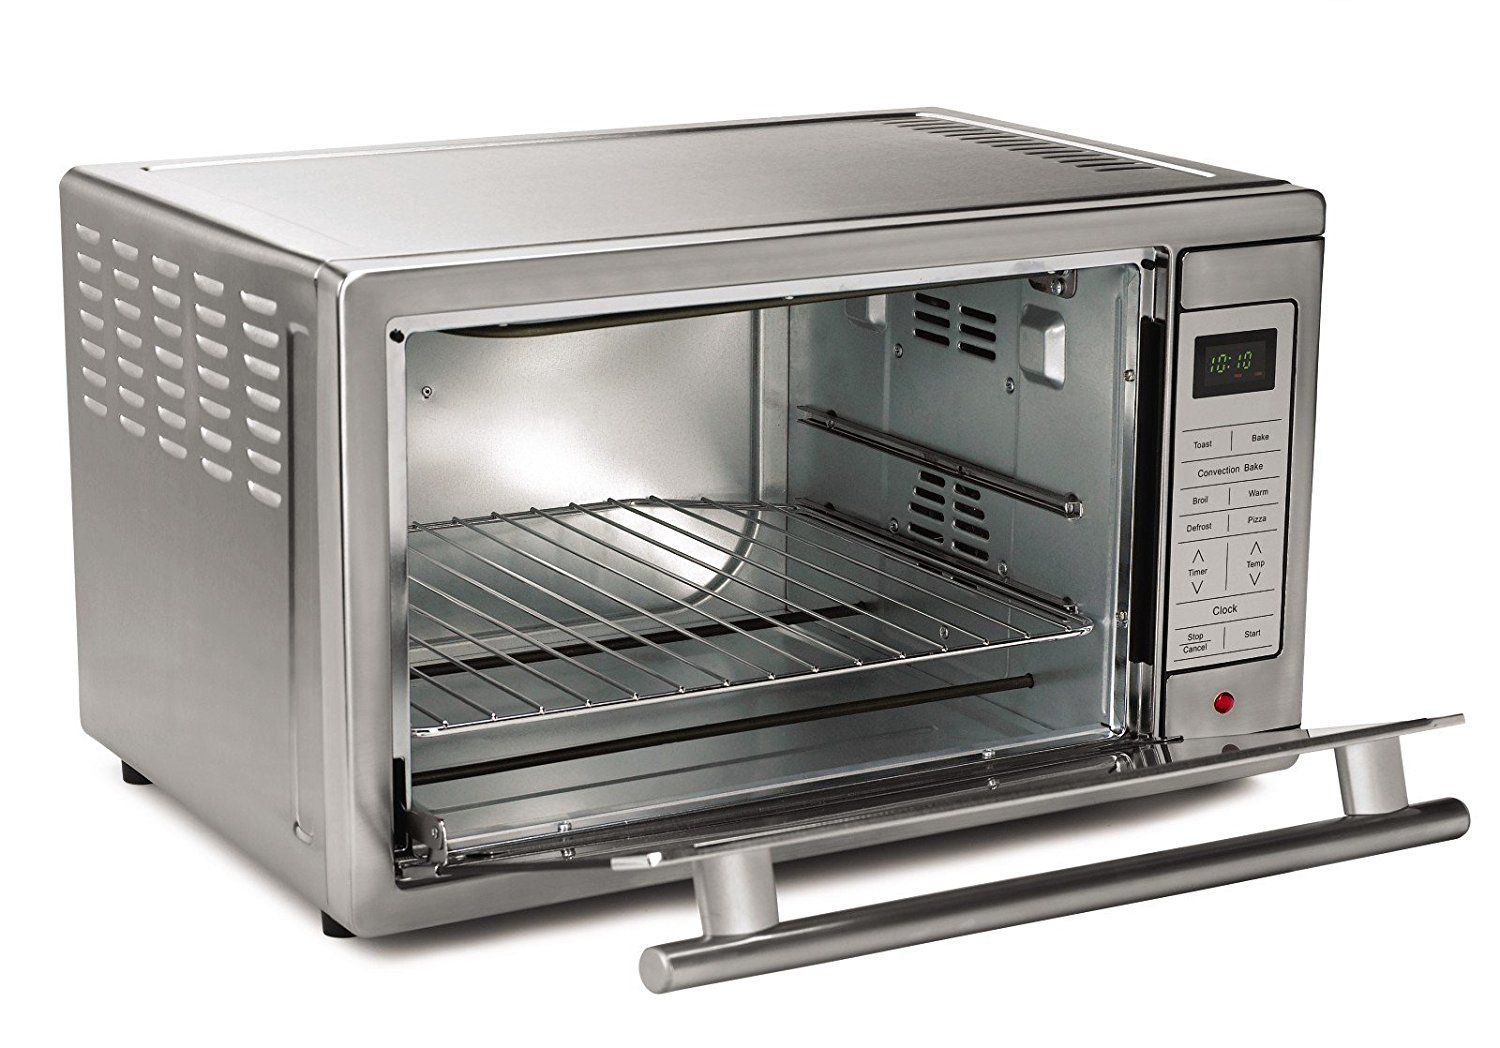 122 large toaster oven for outdoor kitchen patio ideas 122 large toaster oven for outdoor kitchen publicscrutiny Choice Image